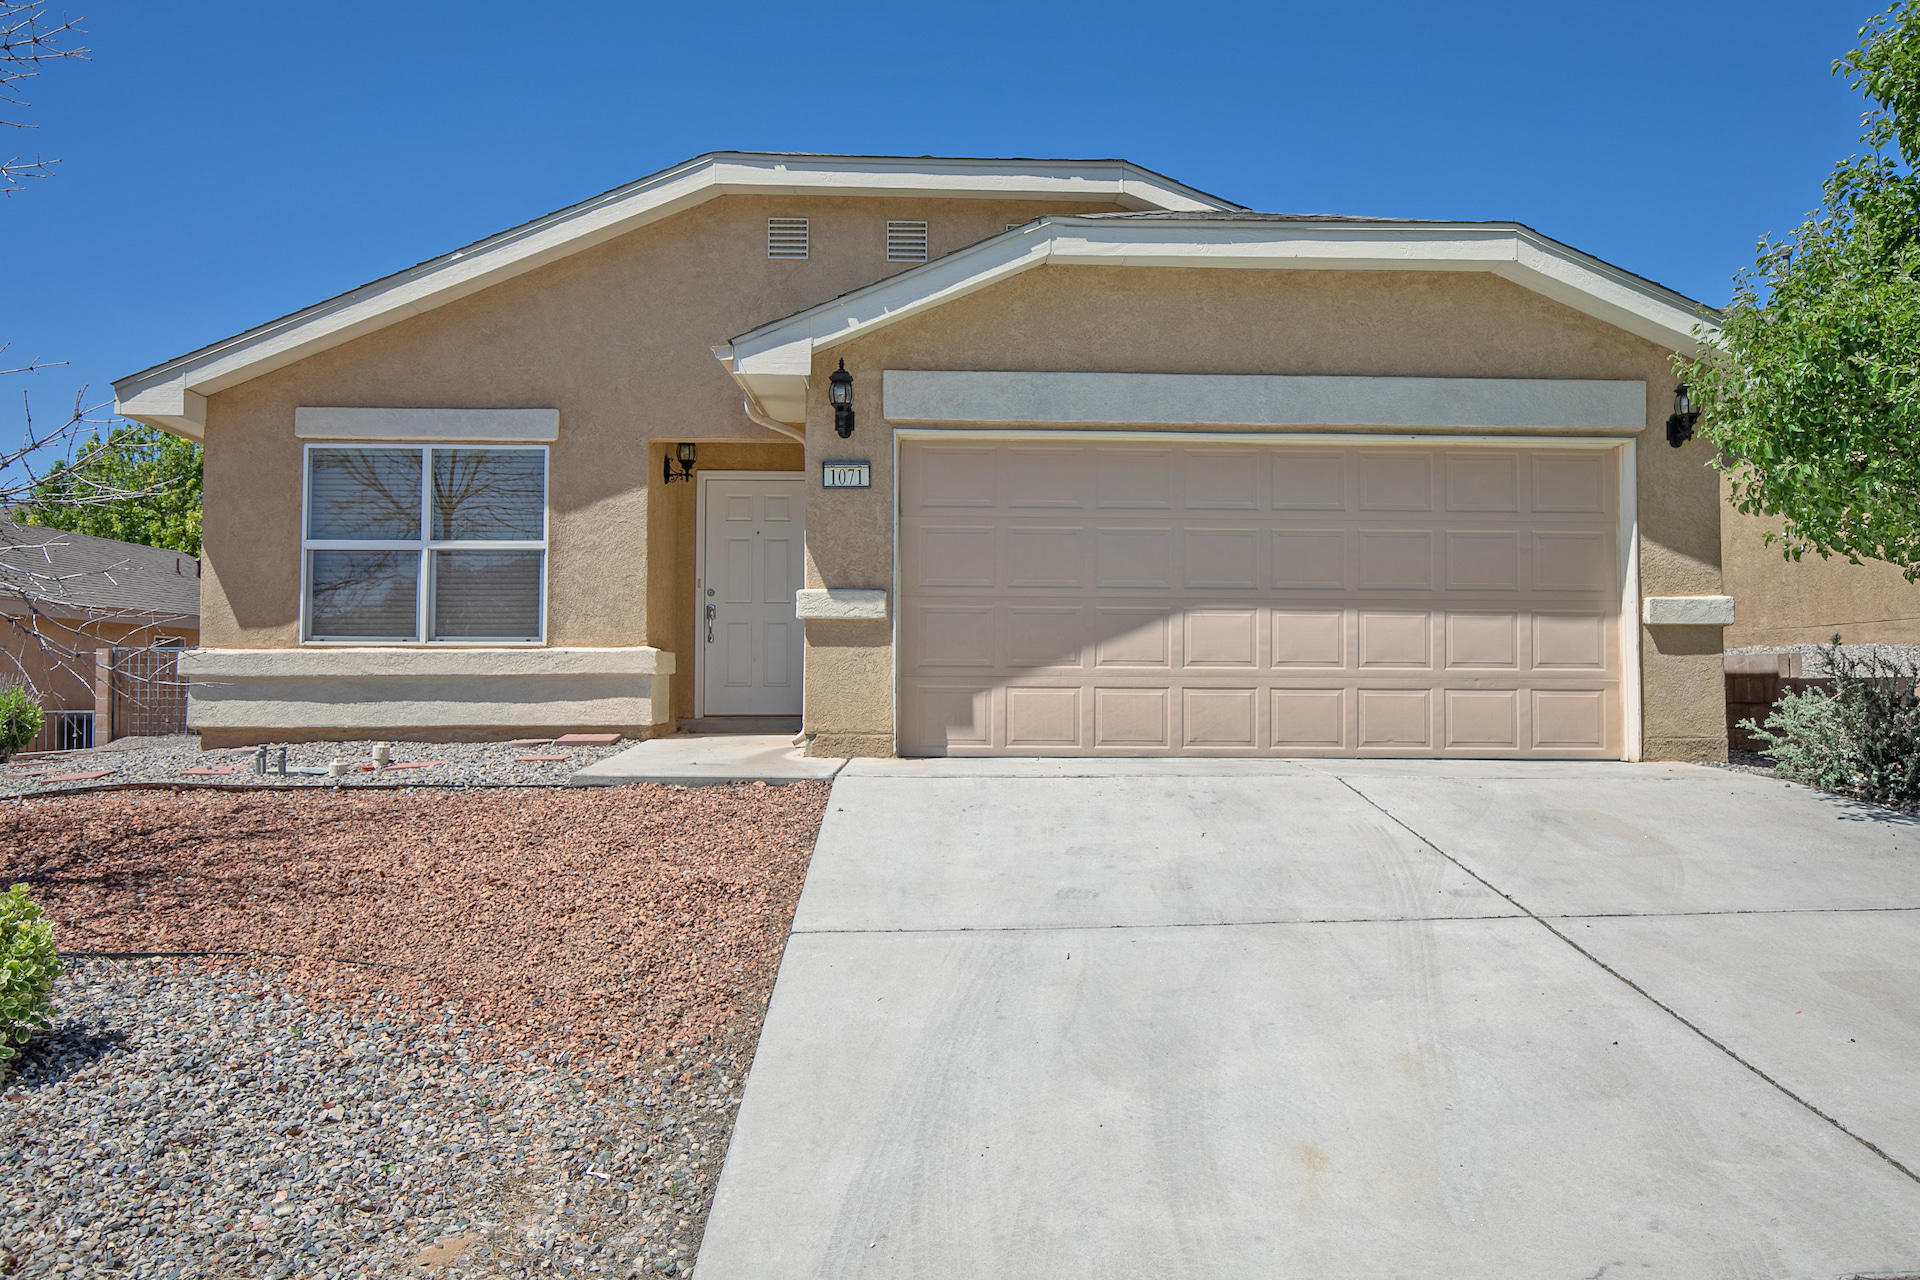 Beautiful 3 bedroom 2 bath home has an excellent location near schools, shopping and I-25. Complete with 1,600 square feet refrigerated air and all appliances included. Call today this home wont last long!